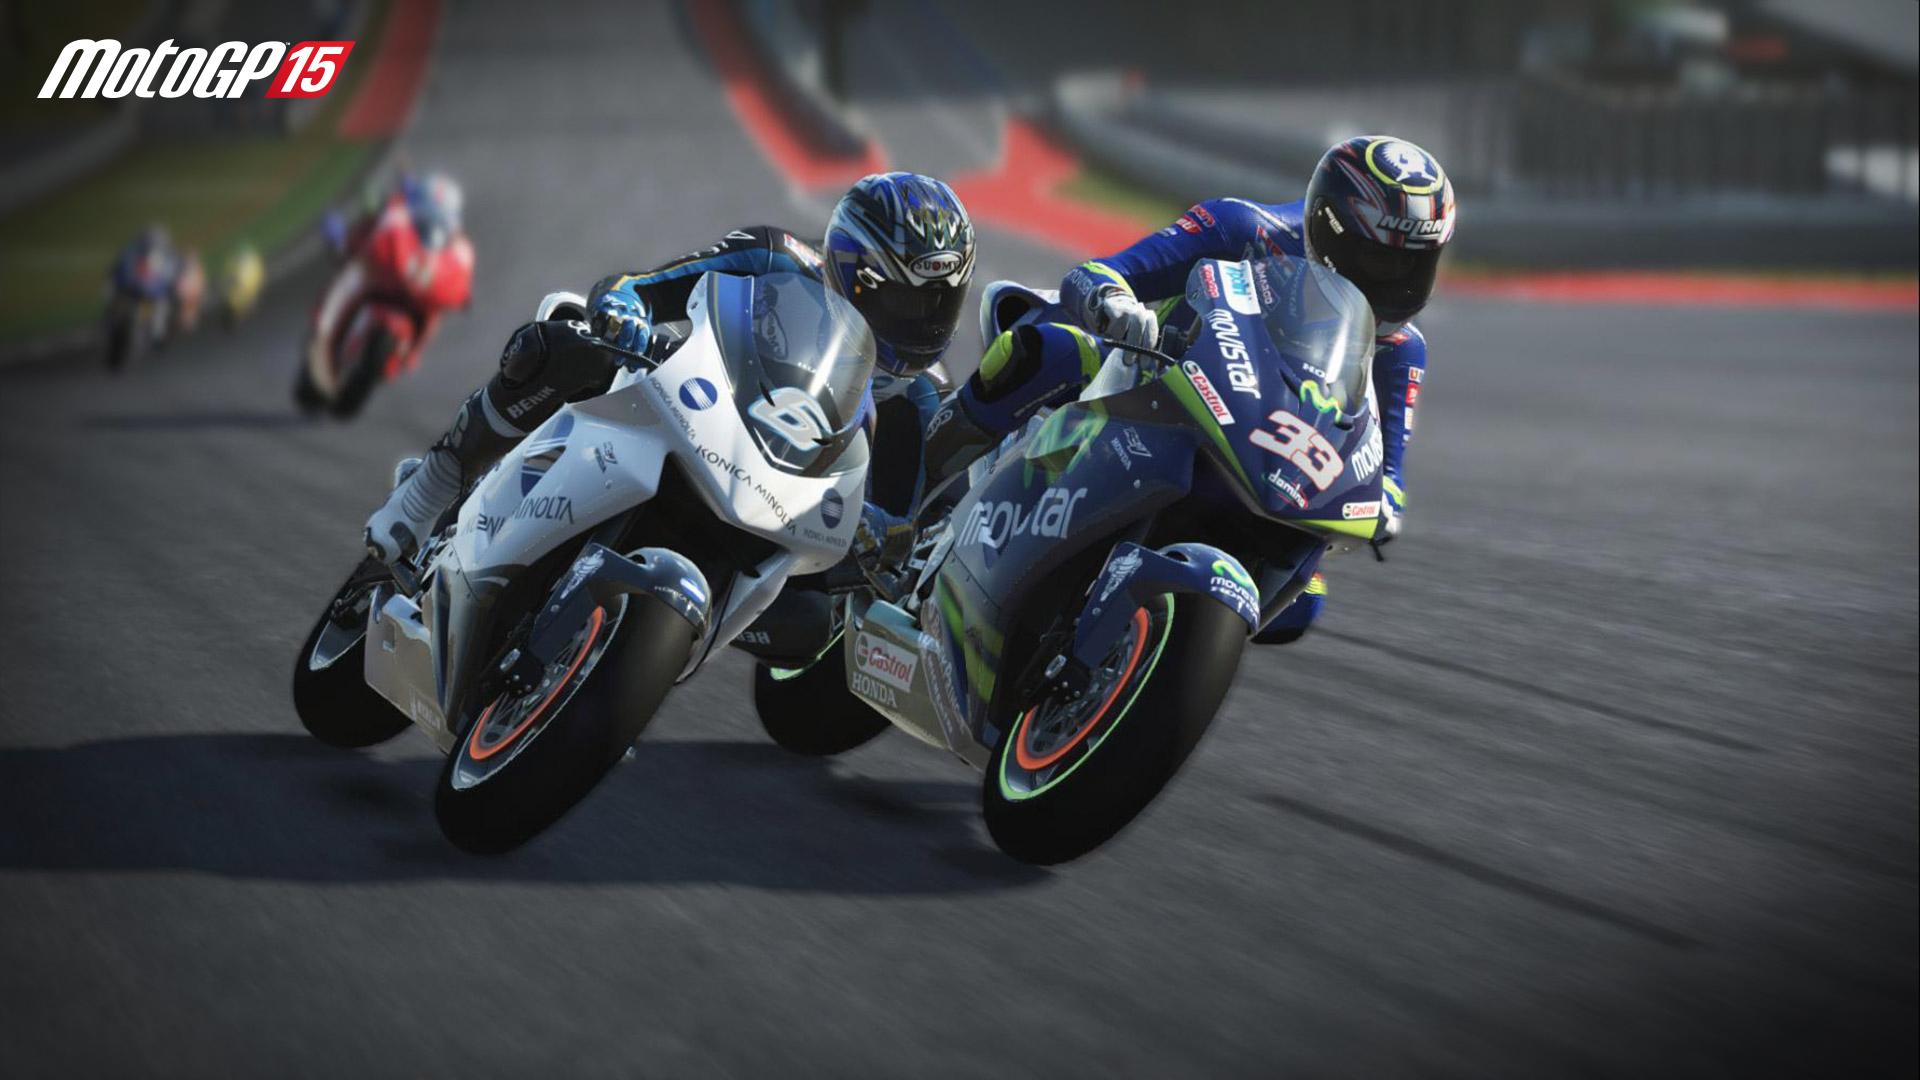 Save 75% on MotoGP™15: 4 Stroke Champions and Events on Steam